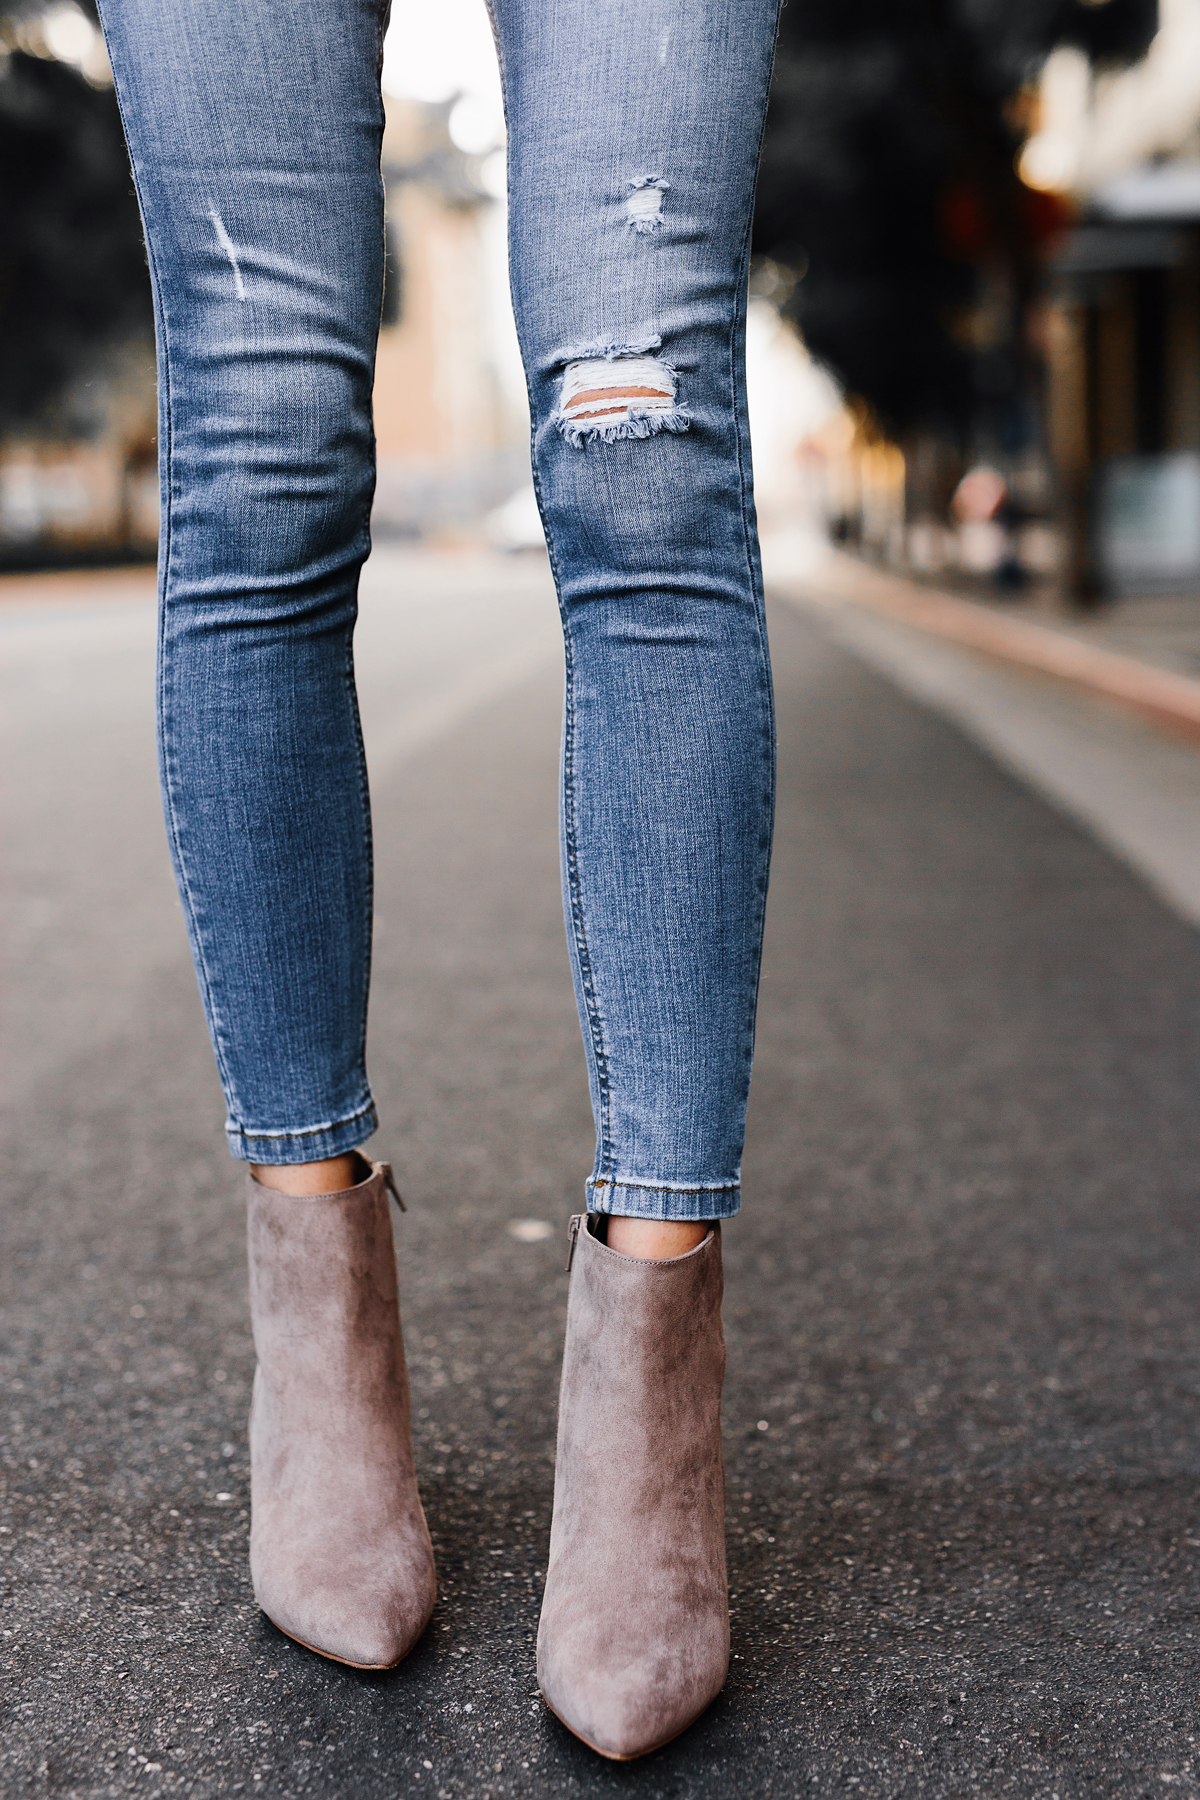 Woman Wearing Steve Madden Taupe Booties Denim Ripped Skinny Jeans Outfit Fashion Jackson San Diego Fashion Blogger Street Style